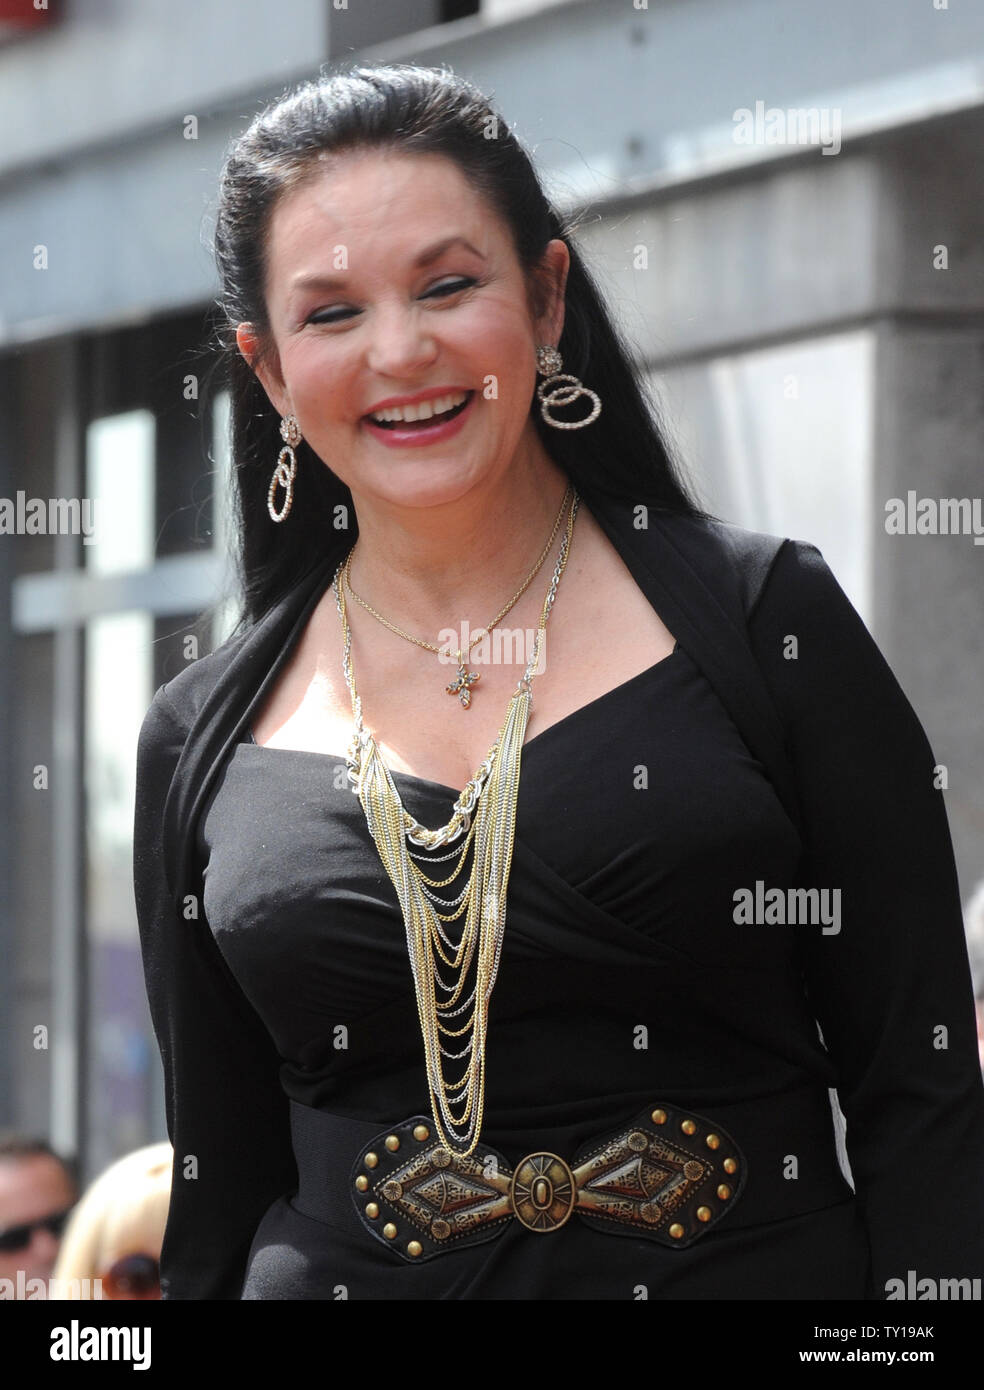 Singer Crystal Gayle is introduced during an unveiling ceremony honoring her with the 2, 390th star on the Hollywood Walk of Fame in Los Angeles on October 2, 2009.     UPI/Jim Ruymen - Stock Image